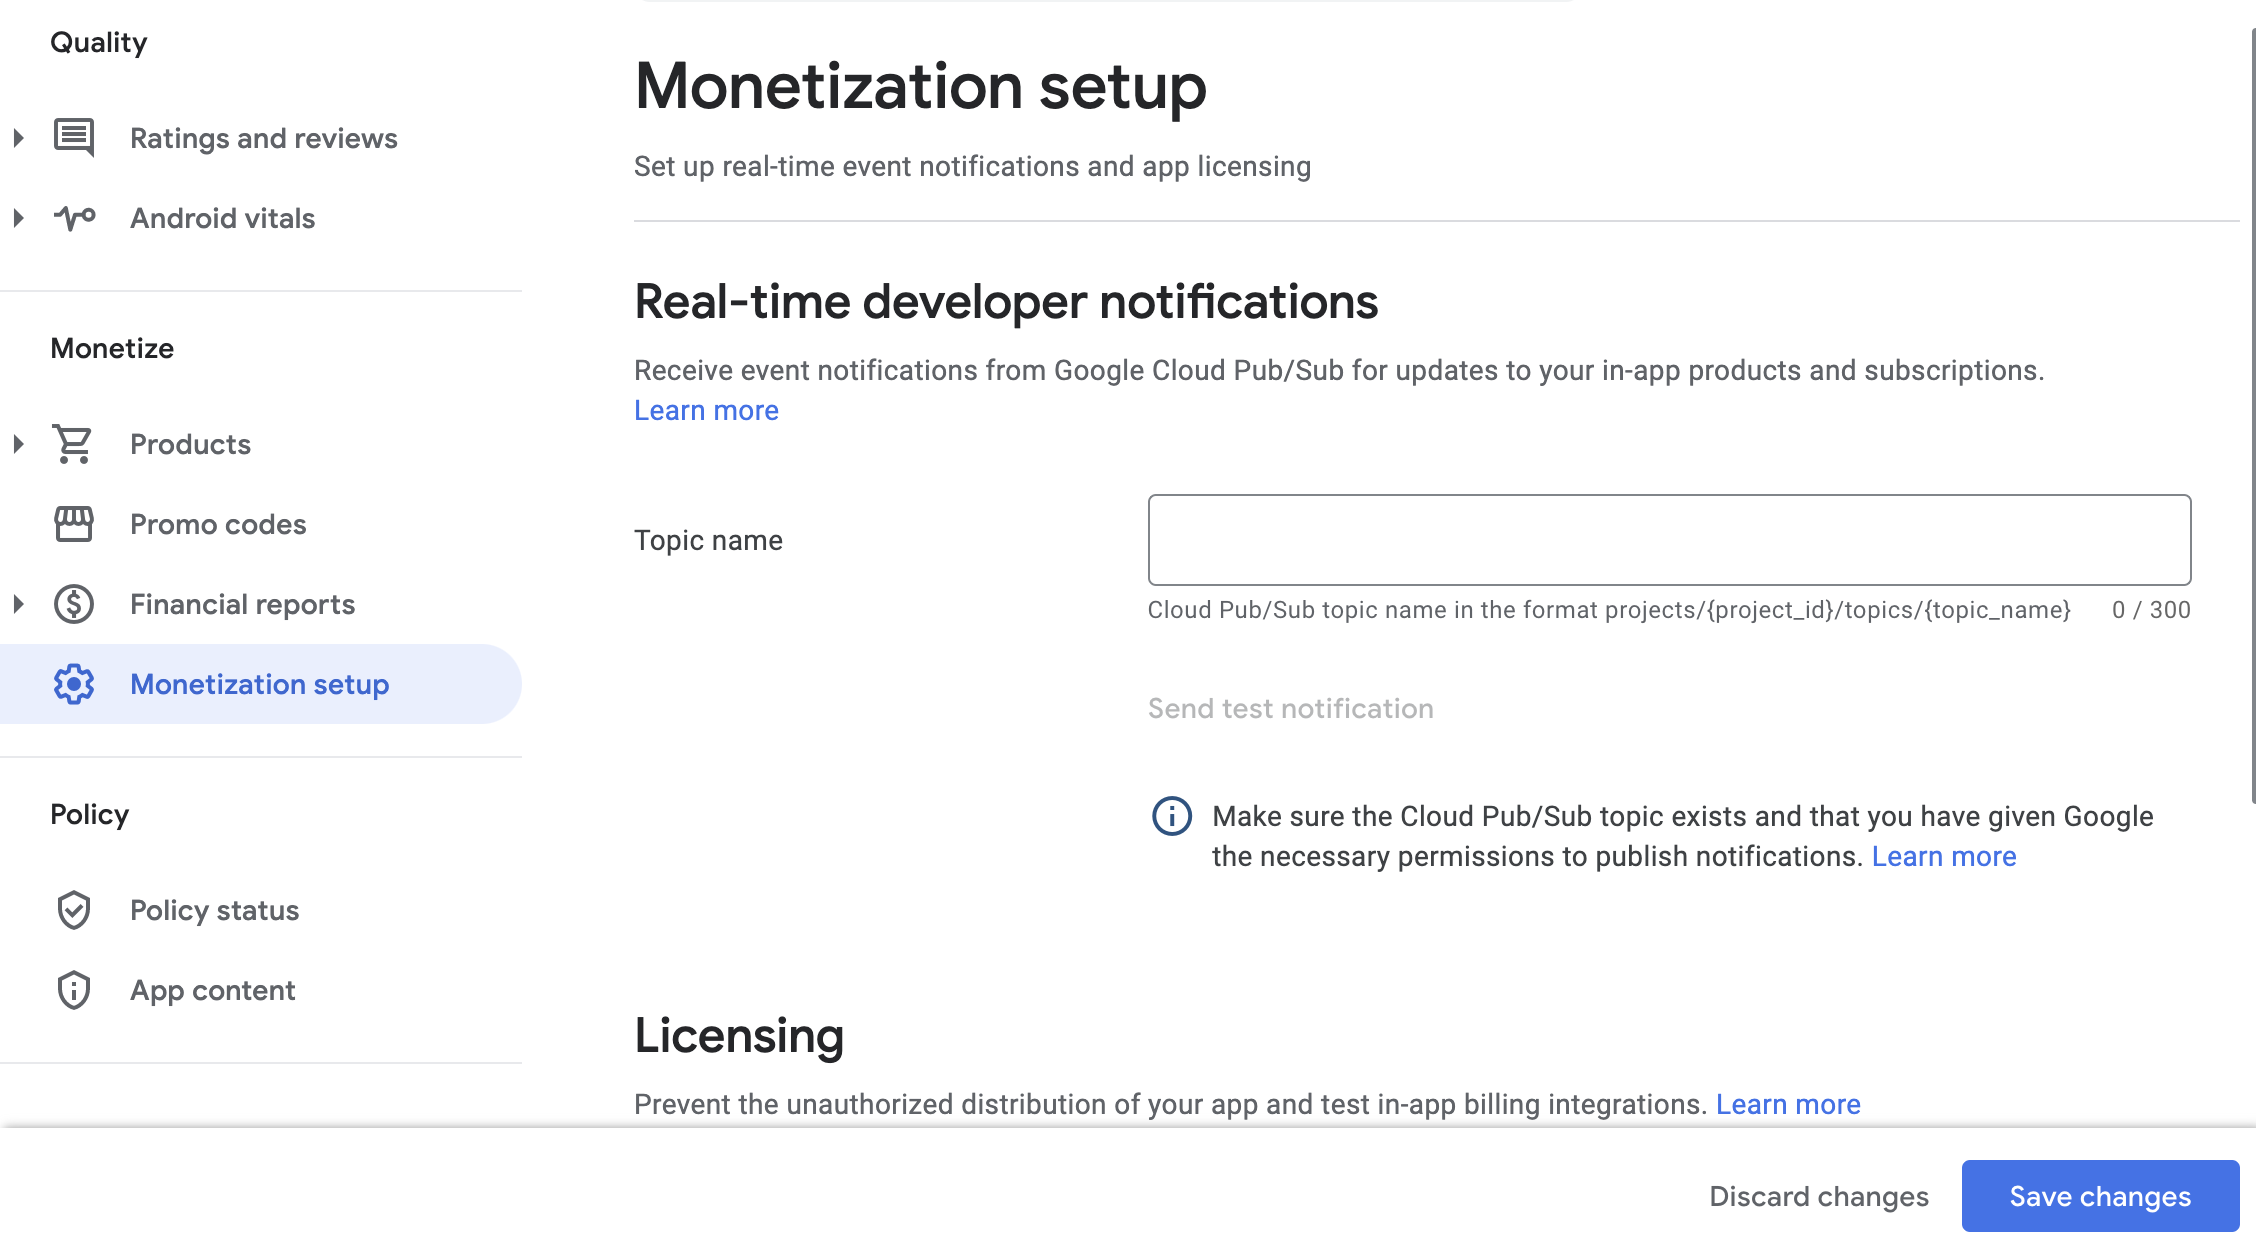 real-time developer notifications section